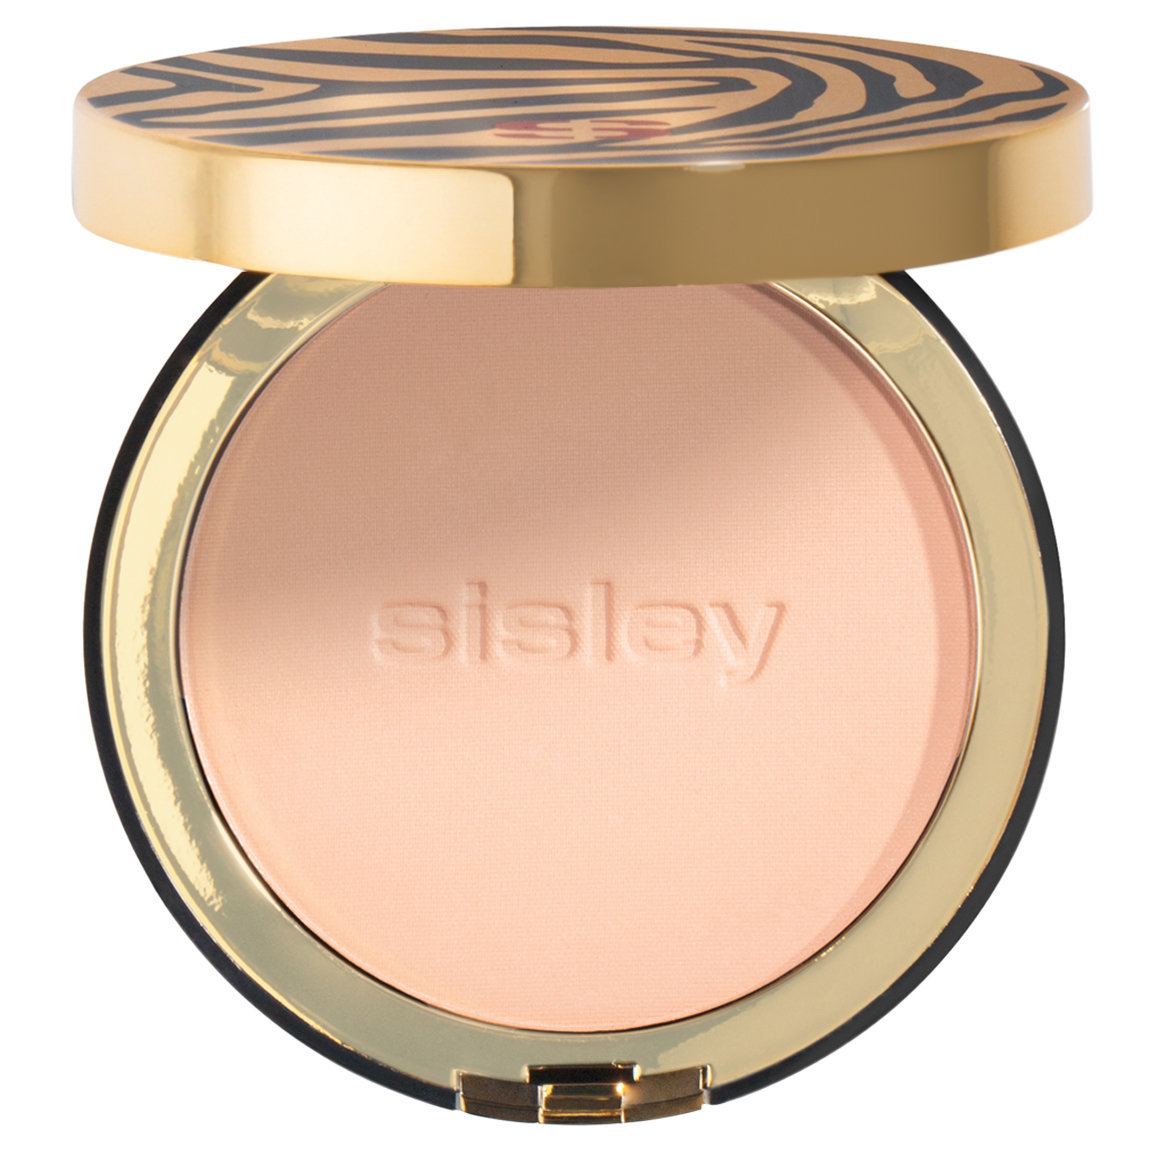 Sisley-Paris Phyto-Poudre Compact 1 Rosy alternative view 1 - product swatch.